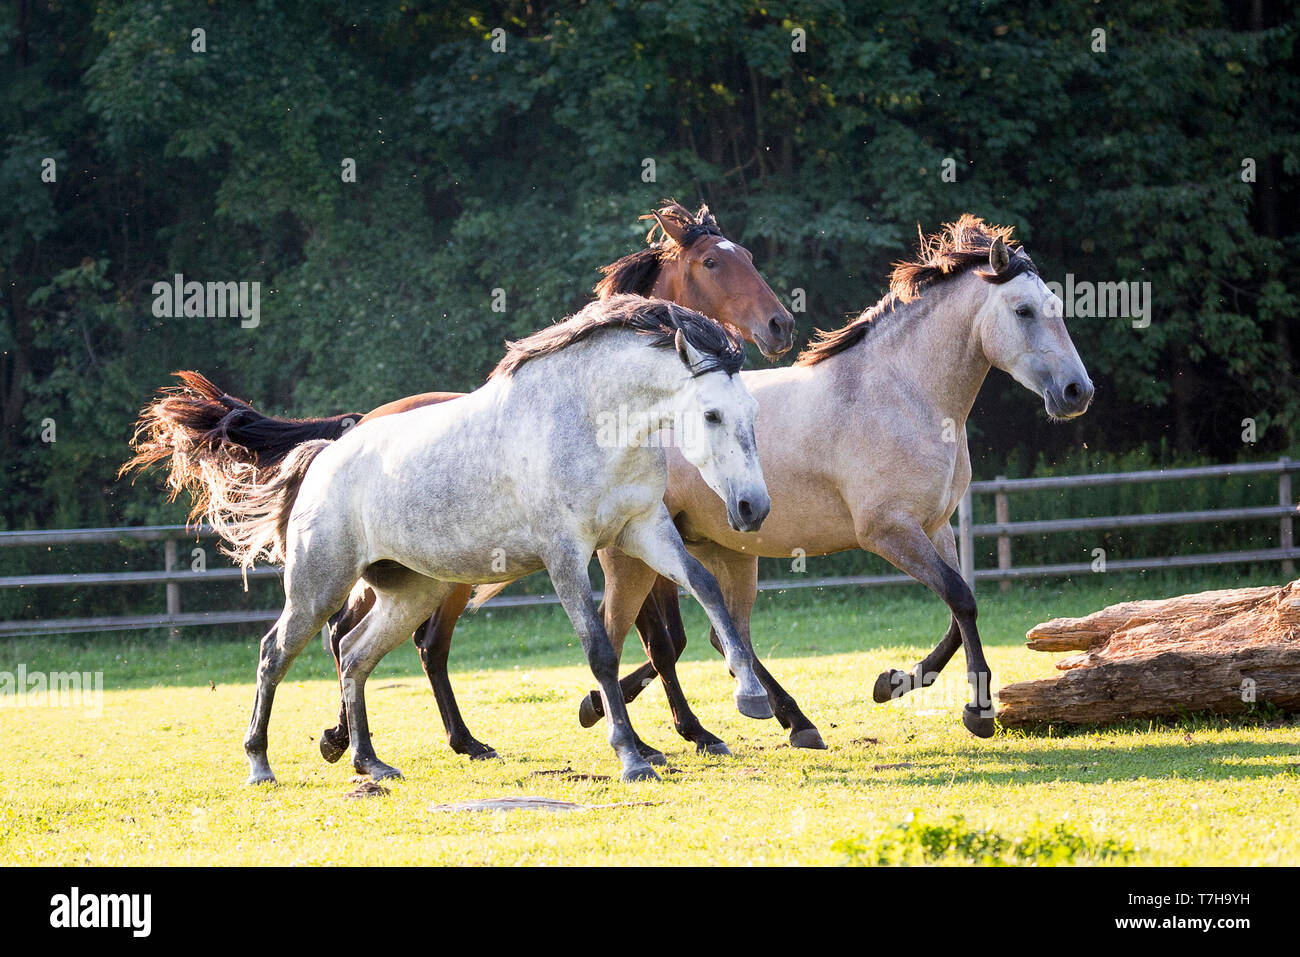 Lusitano. Juvenile mares galloping on a pasture. Germany - Stock Image